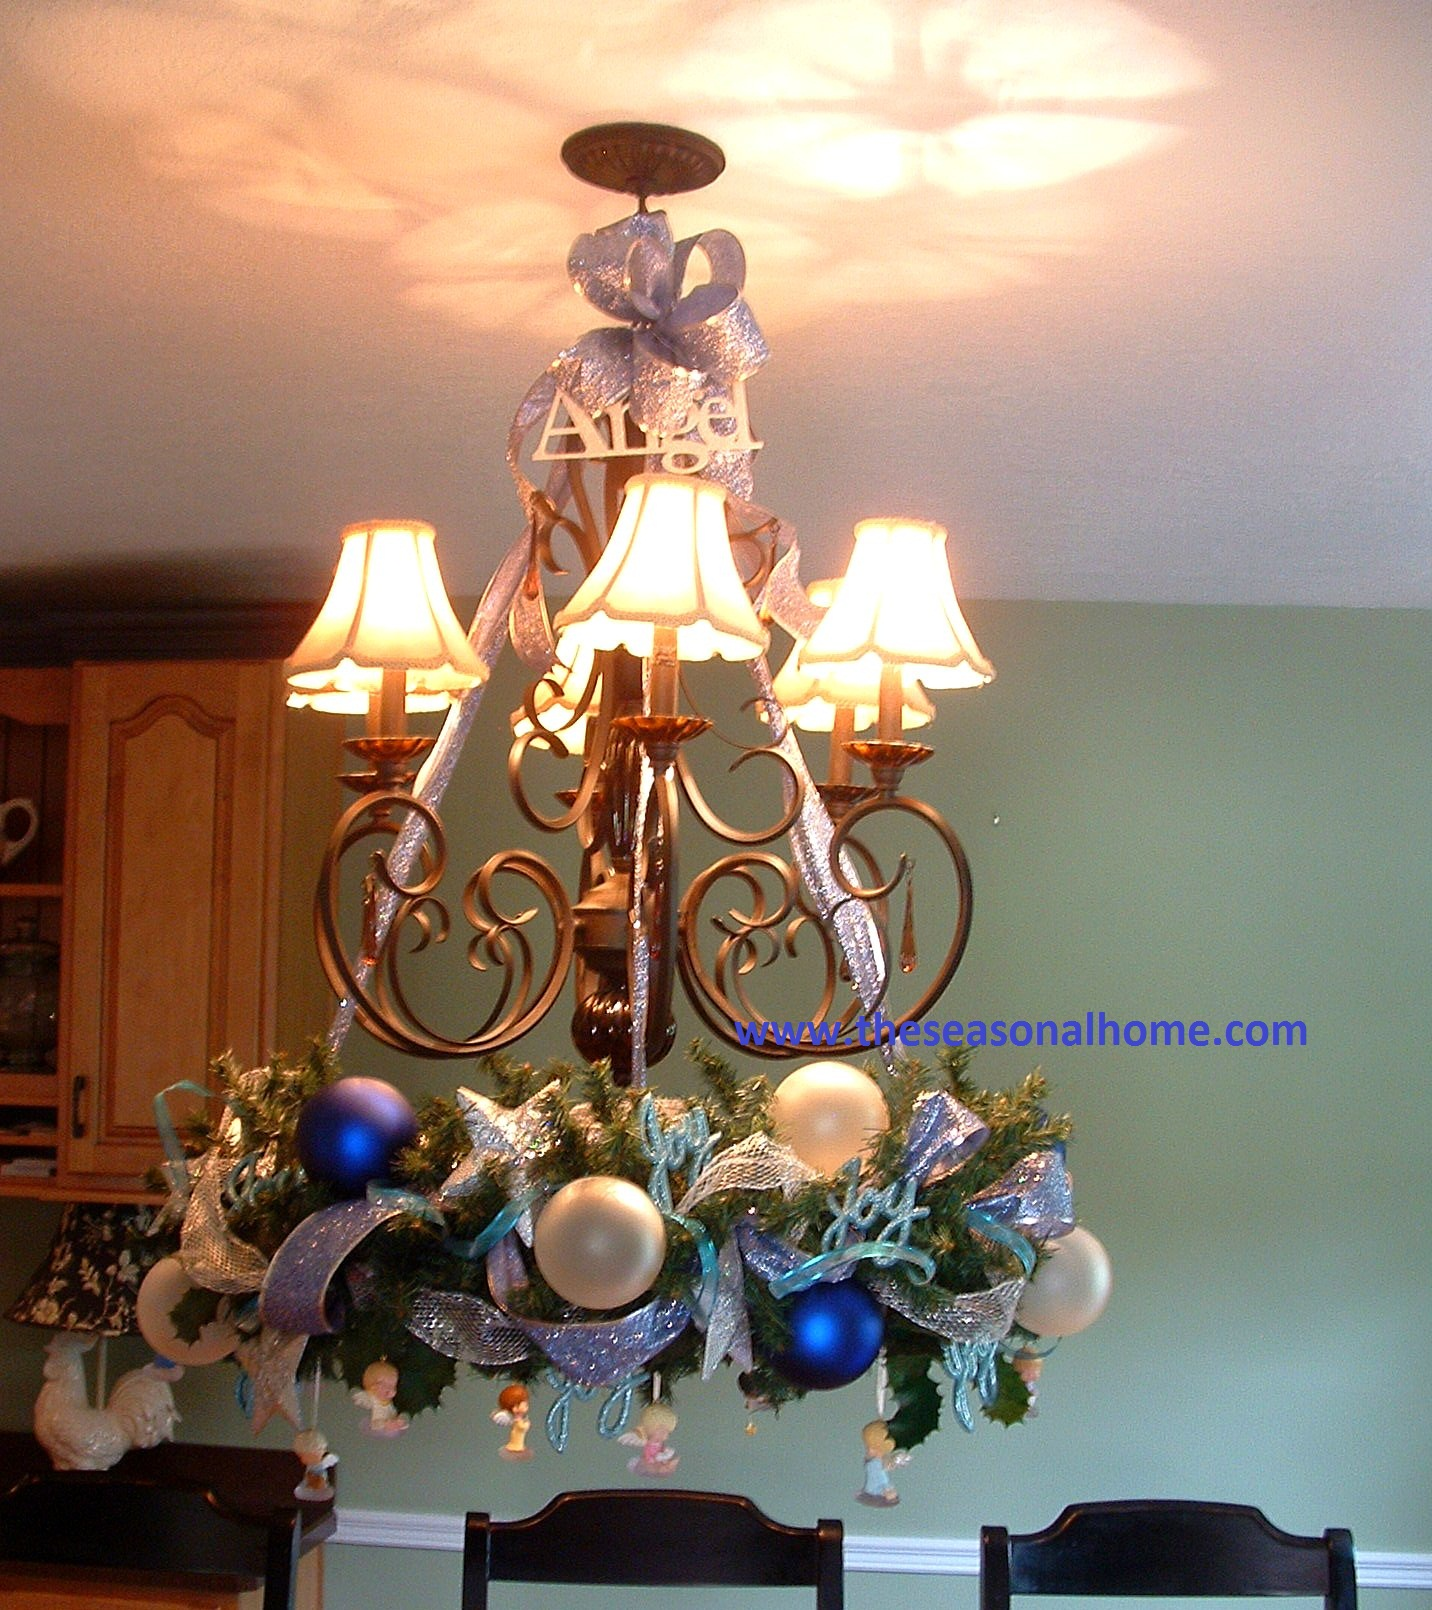 Chandelier Wreaths (for Fall & Christmas) « The Seasonal Home